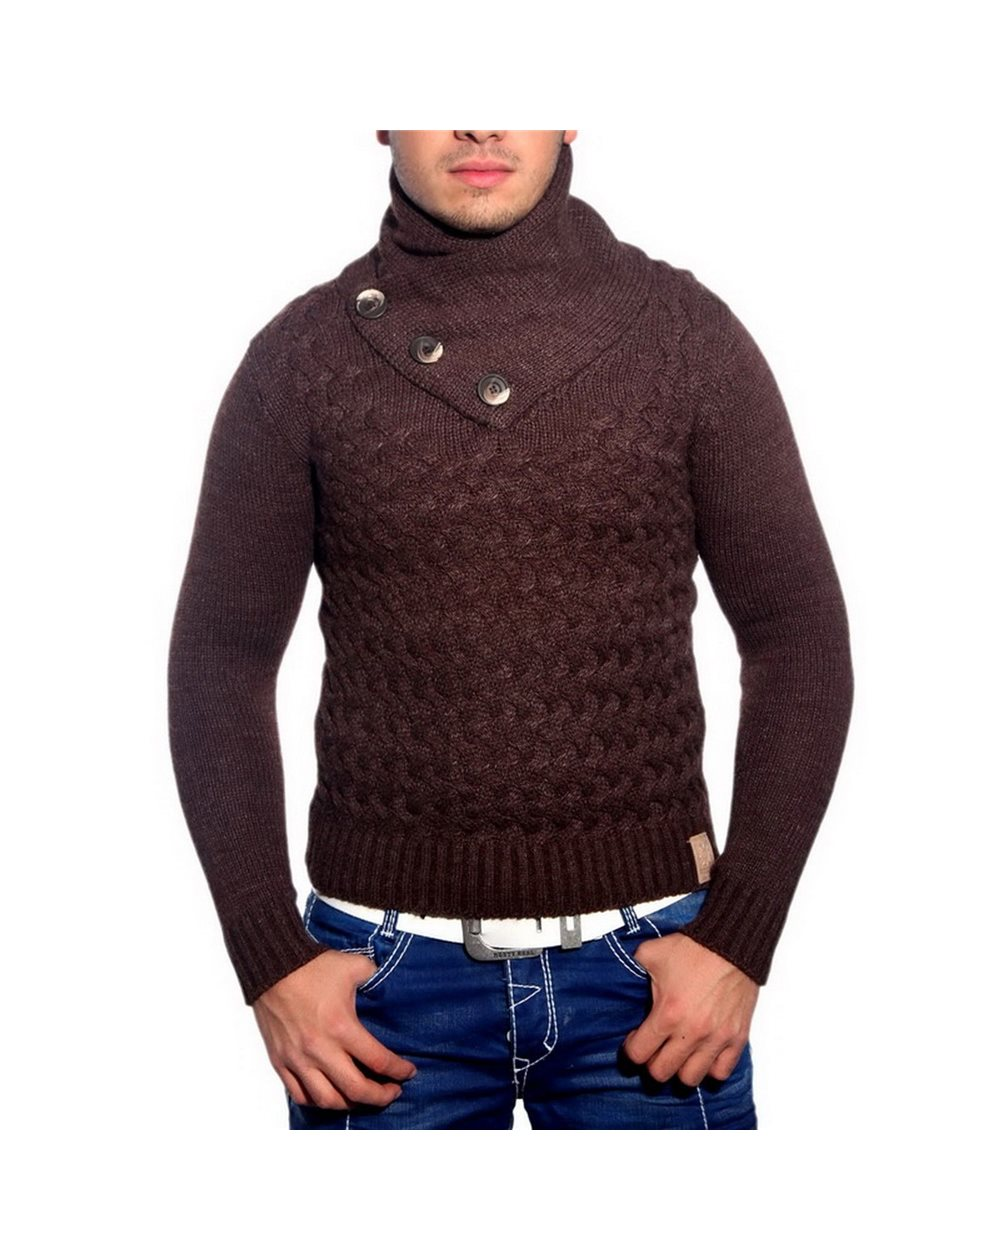 Subliminal Homme Col Avec Montant Pull Mode Bouton Rn3158 Rouler CBrxoWde